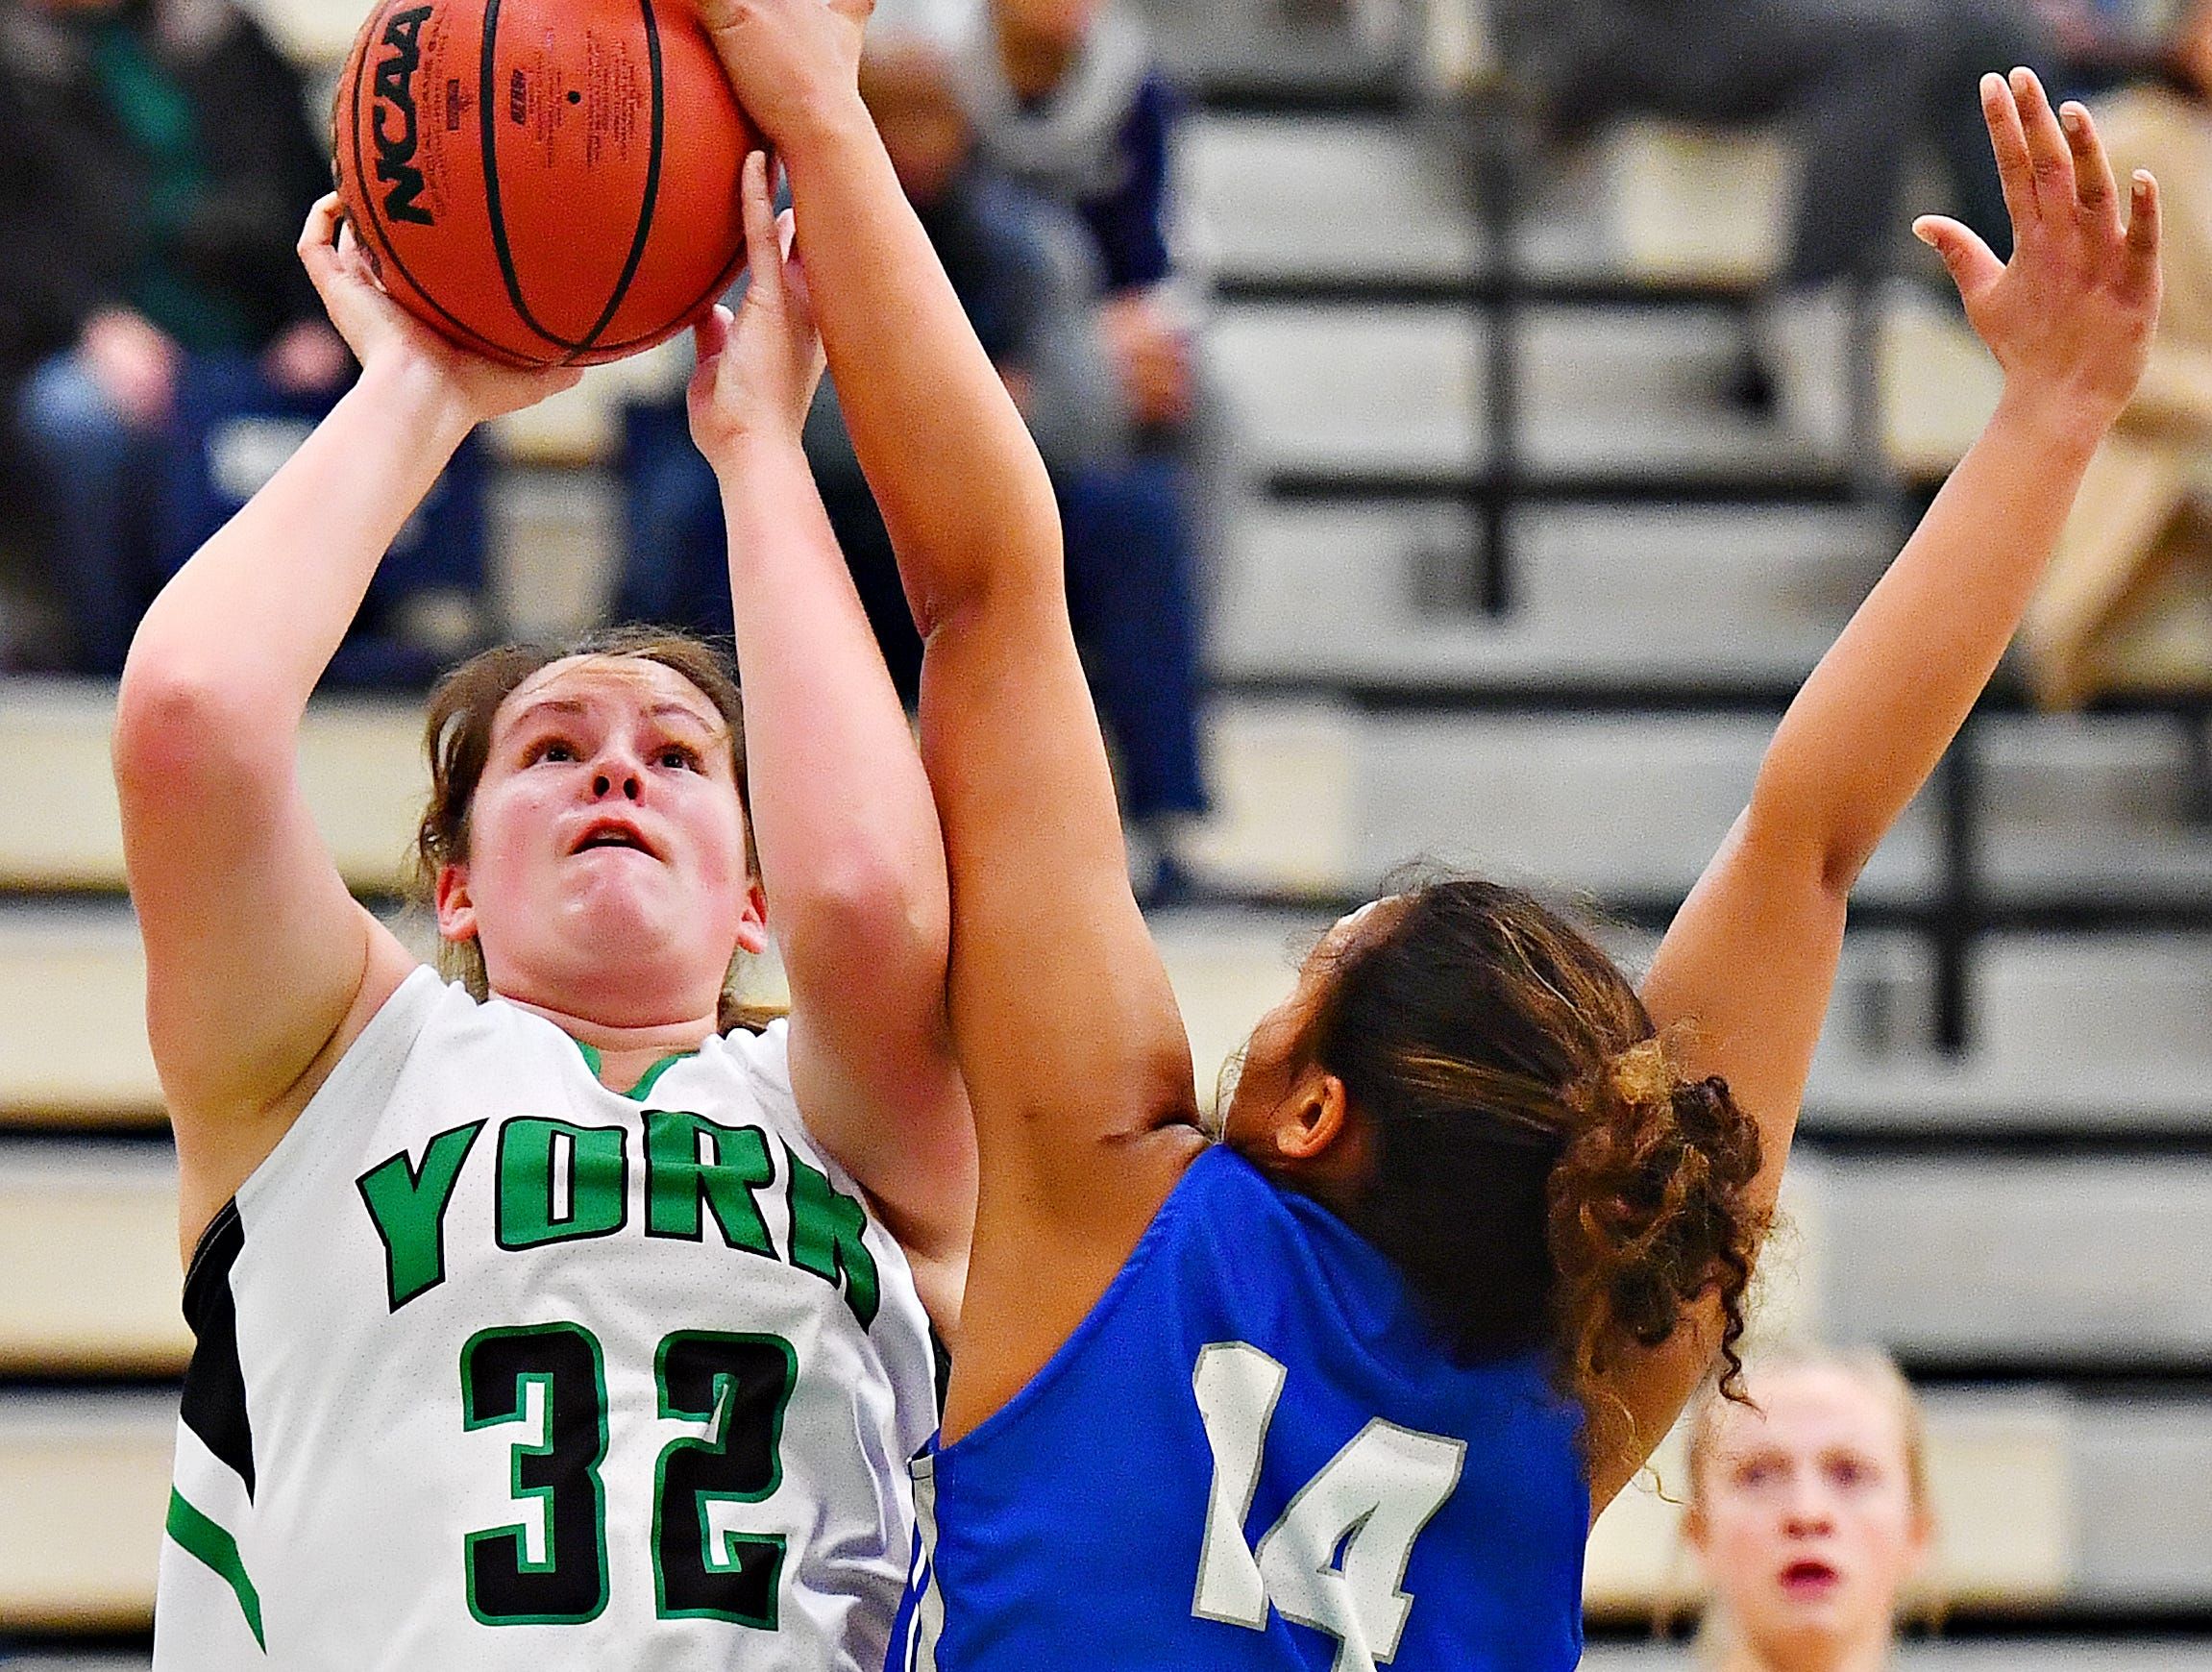 York College's Molly Day, left, gets stopped by Elizabethtown's Mikayla Ruth during women's basketball action at Grumbacher Sport and Fitness Center in Spring Garden Township, Wednesday, Nov. 28, 2018. Dawn J. Sagert photo